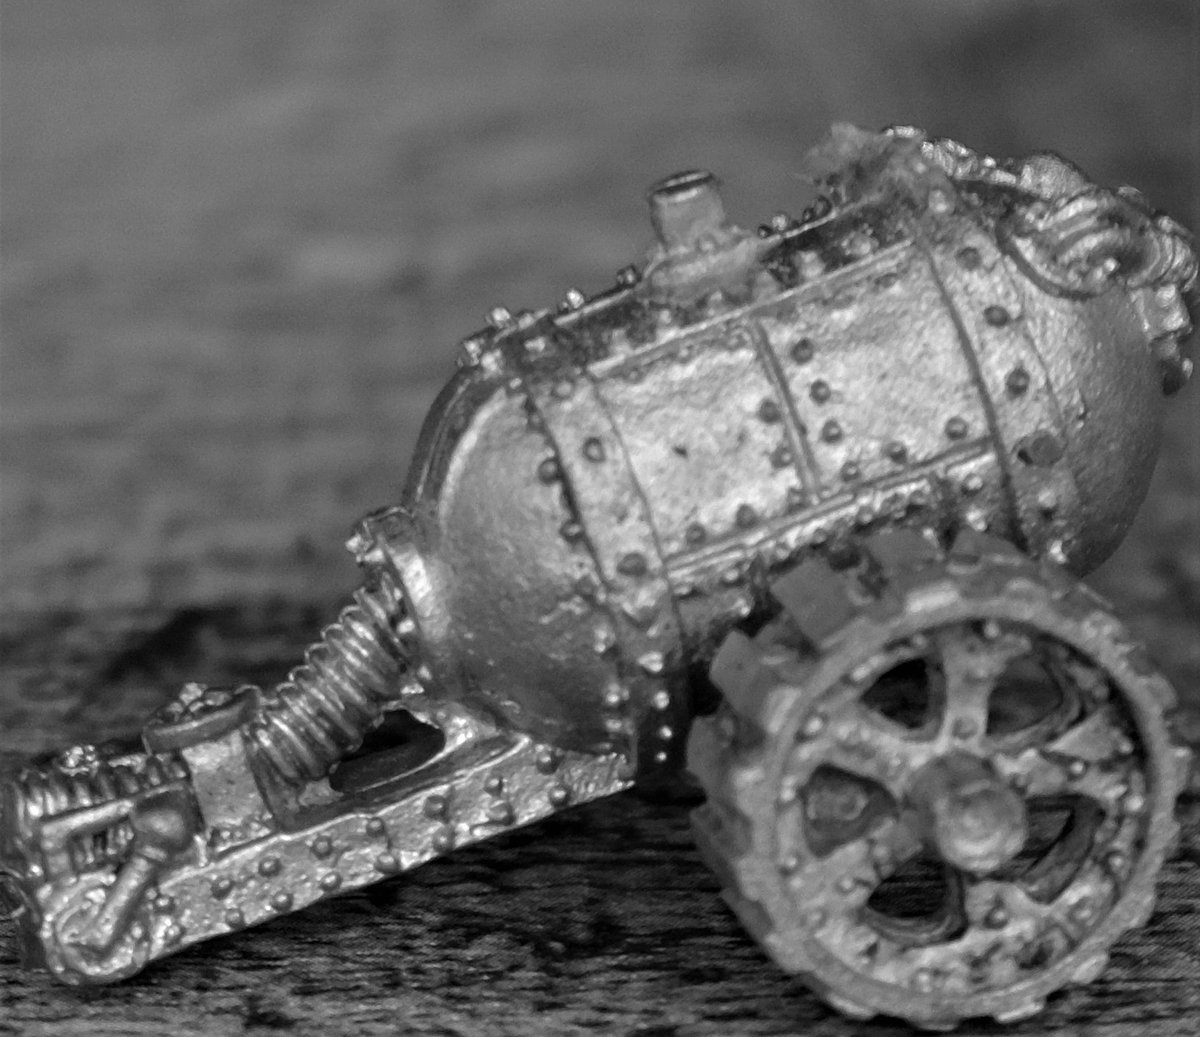 Can you guess what it is? #40k #Wargaming #oldhammer https://t.co/0Xwvf66p3R